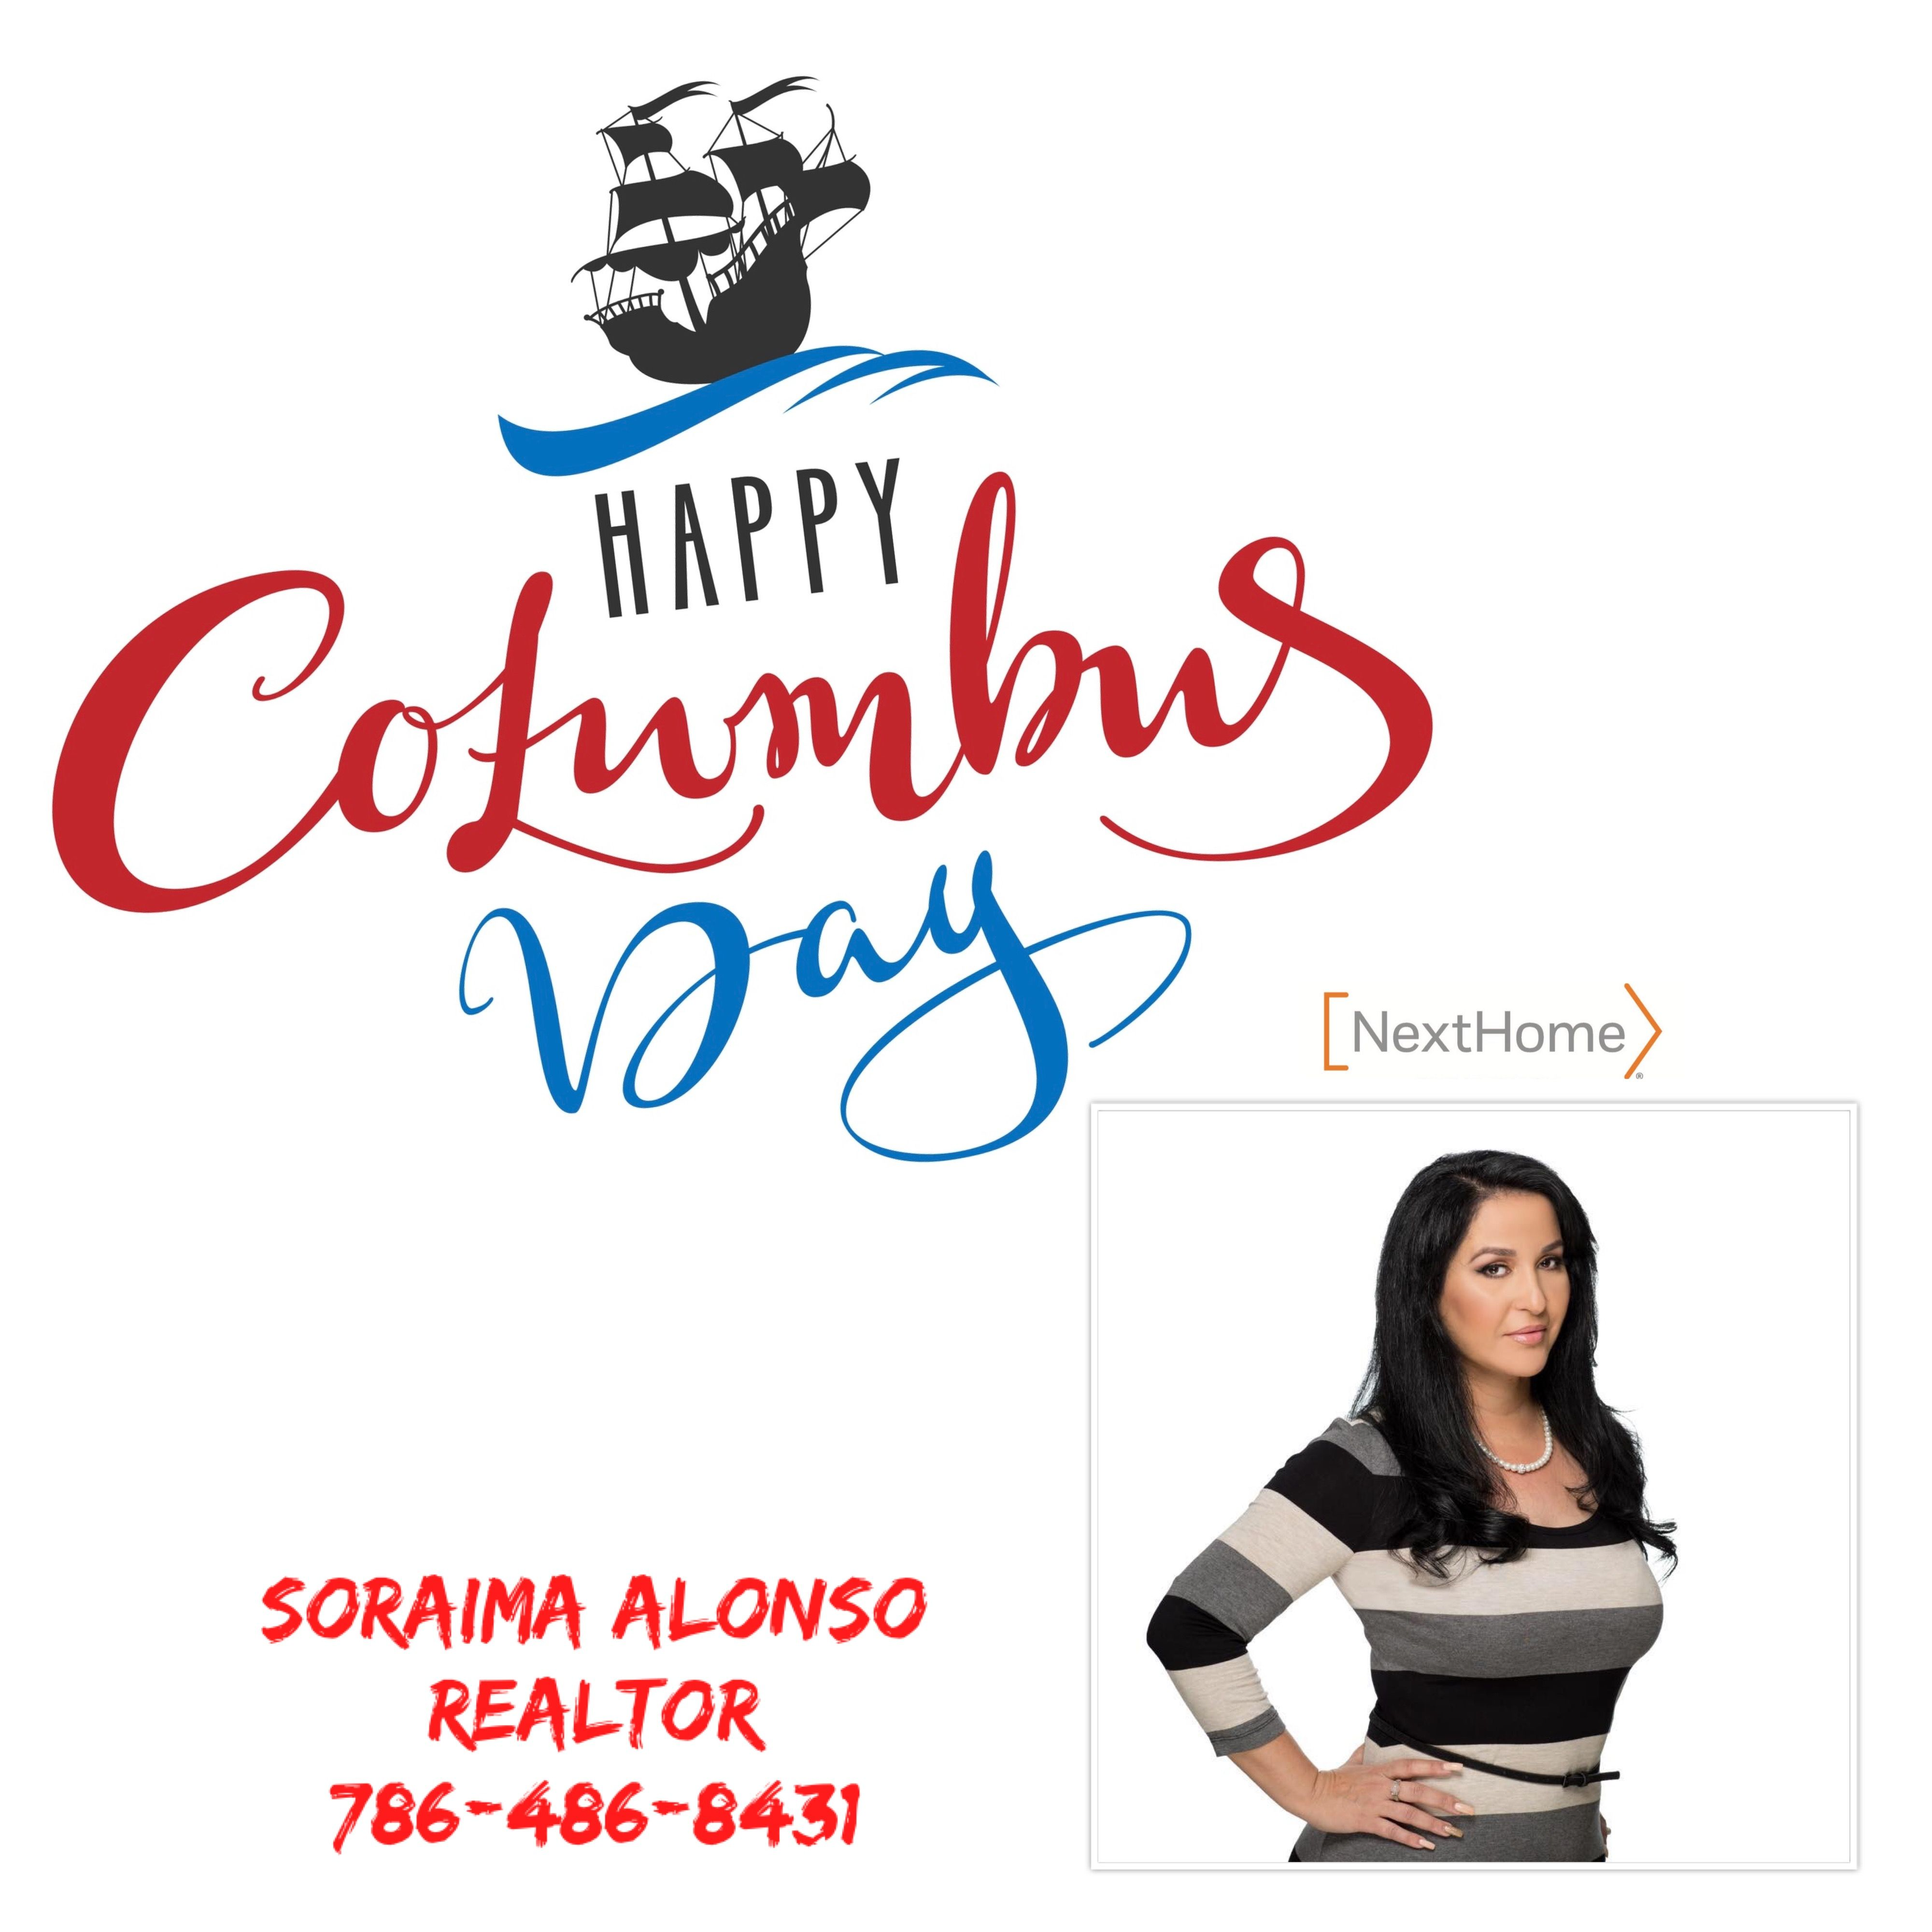 Good Morning We Should Celebrate Columbus Day By Letting Me Discover Your Next Home Buyers Sel I Love My Friends Miami Real Estate Beautiful Day